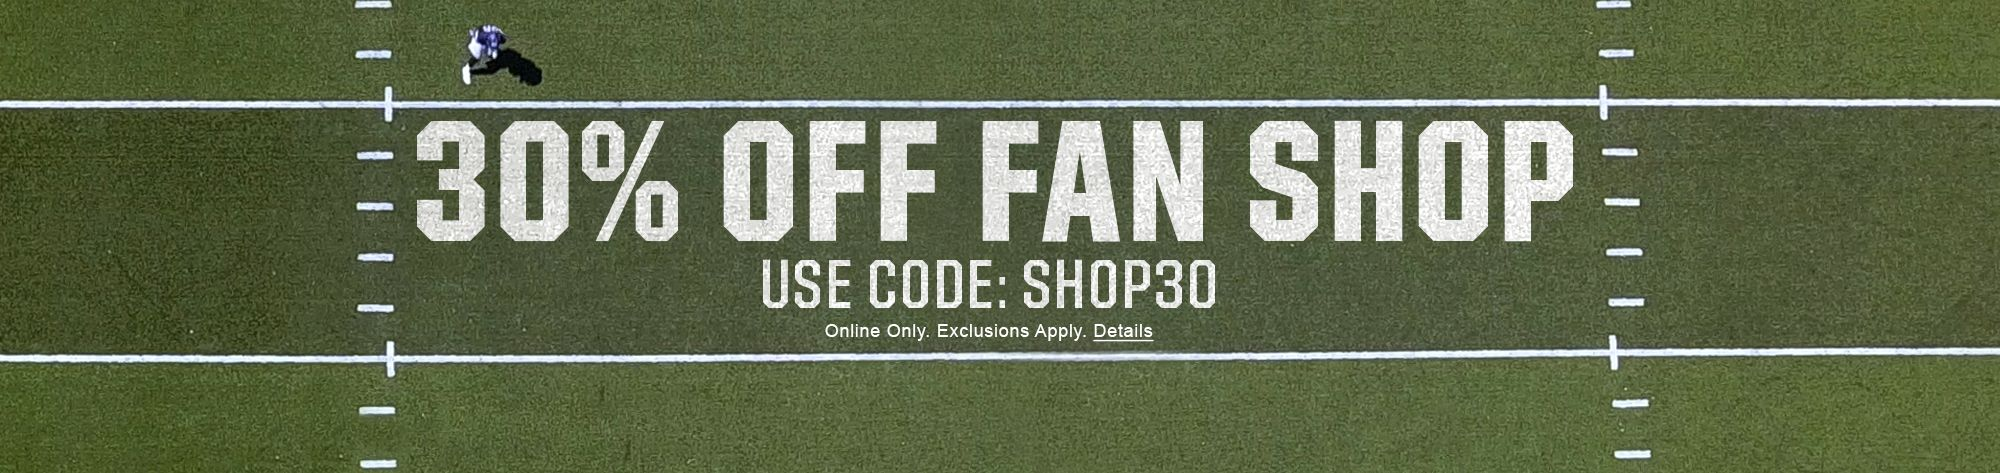 30% Off Fan Shop Online Only Exclusions Apply